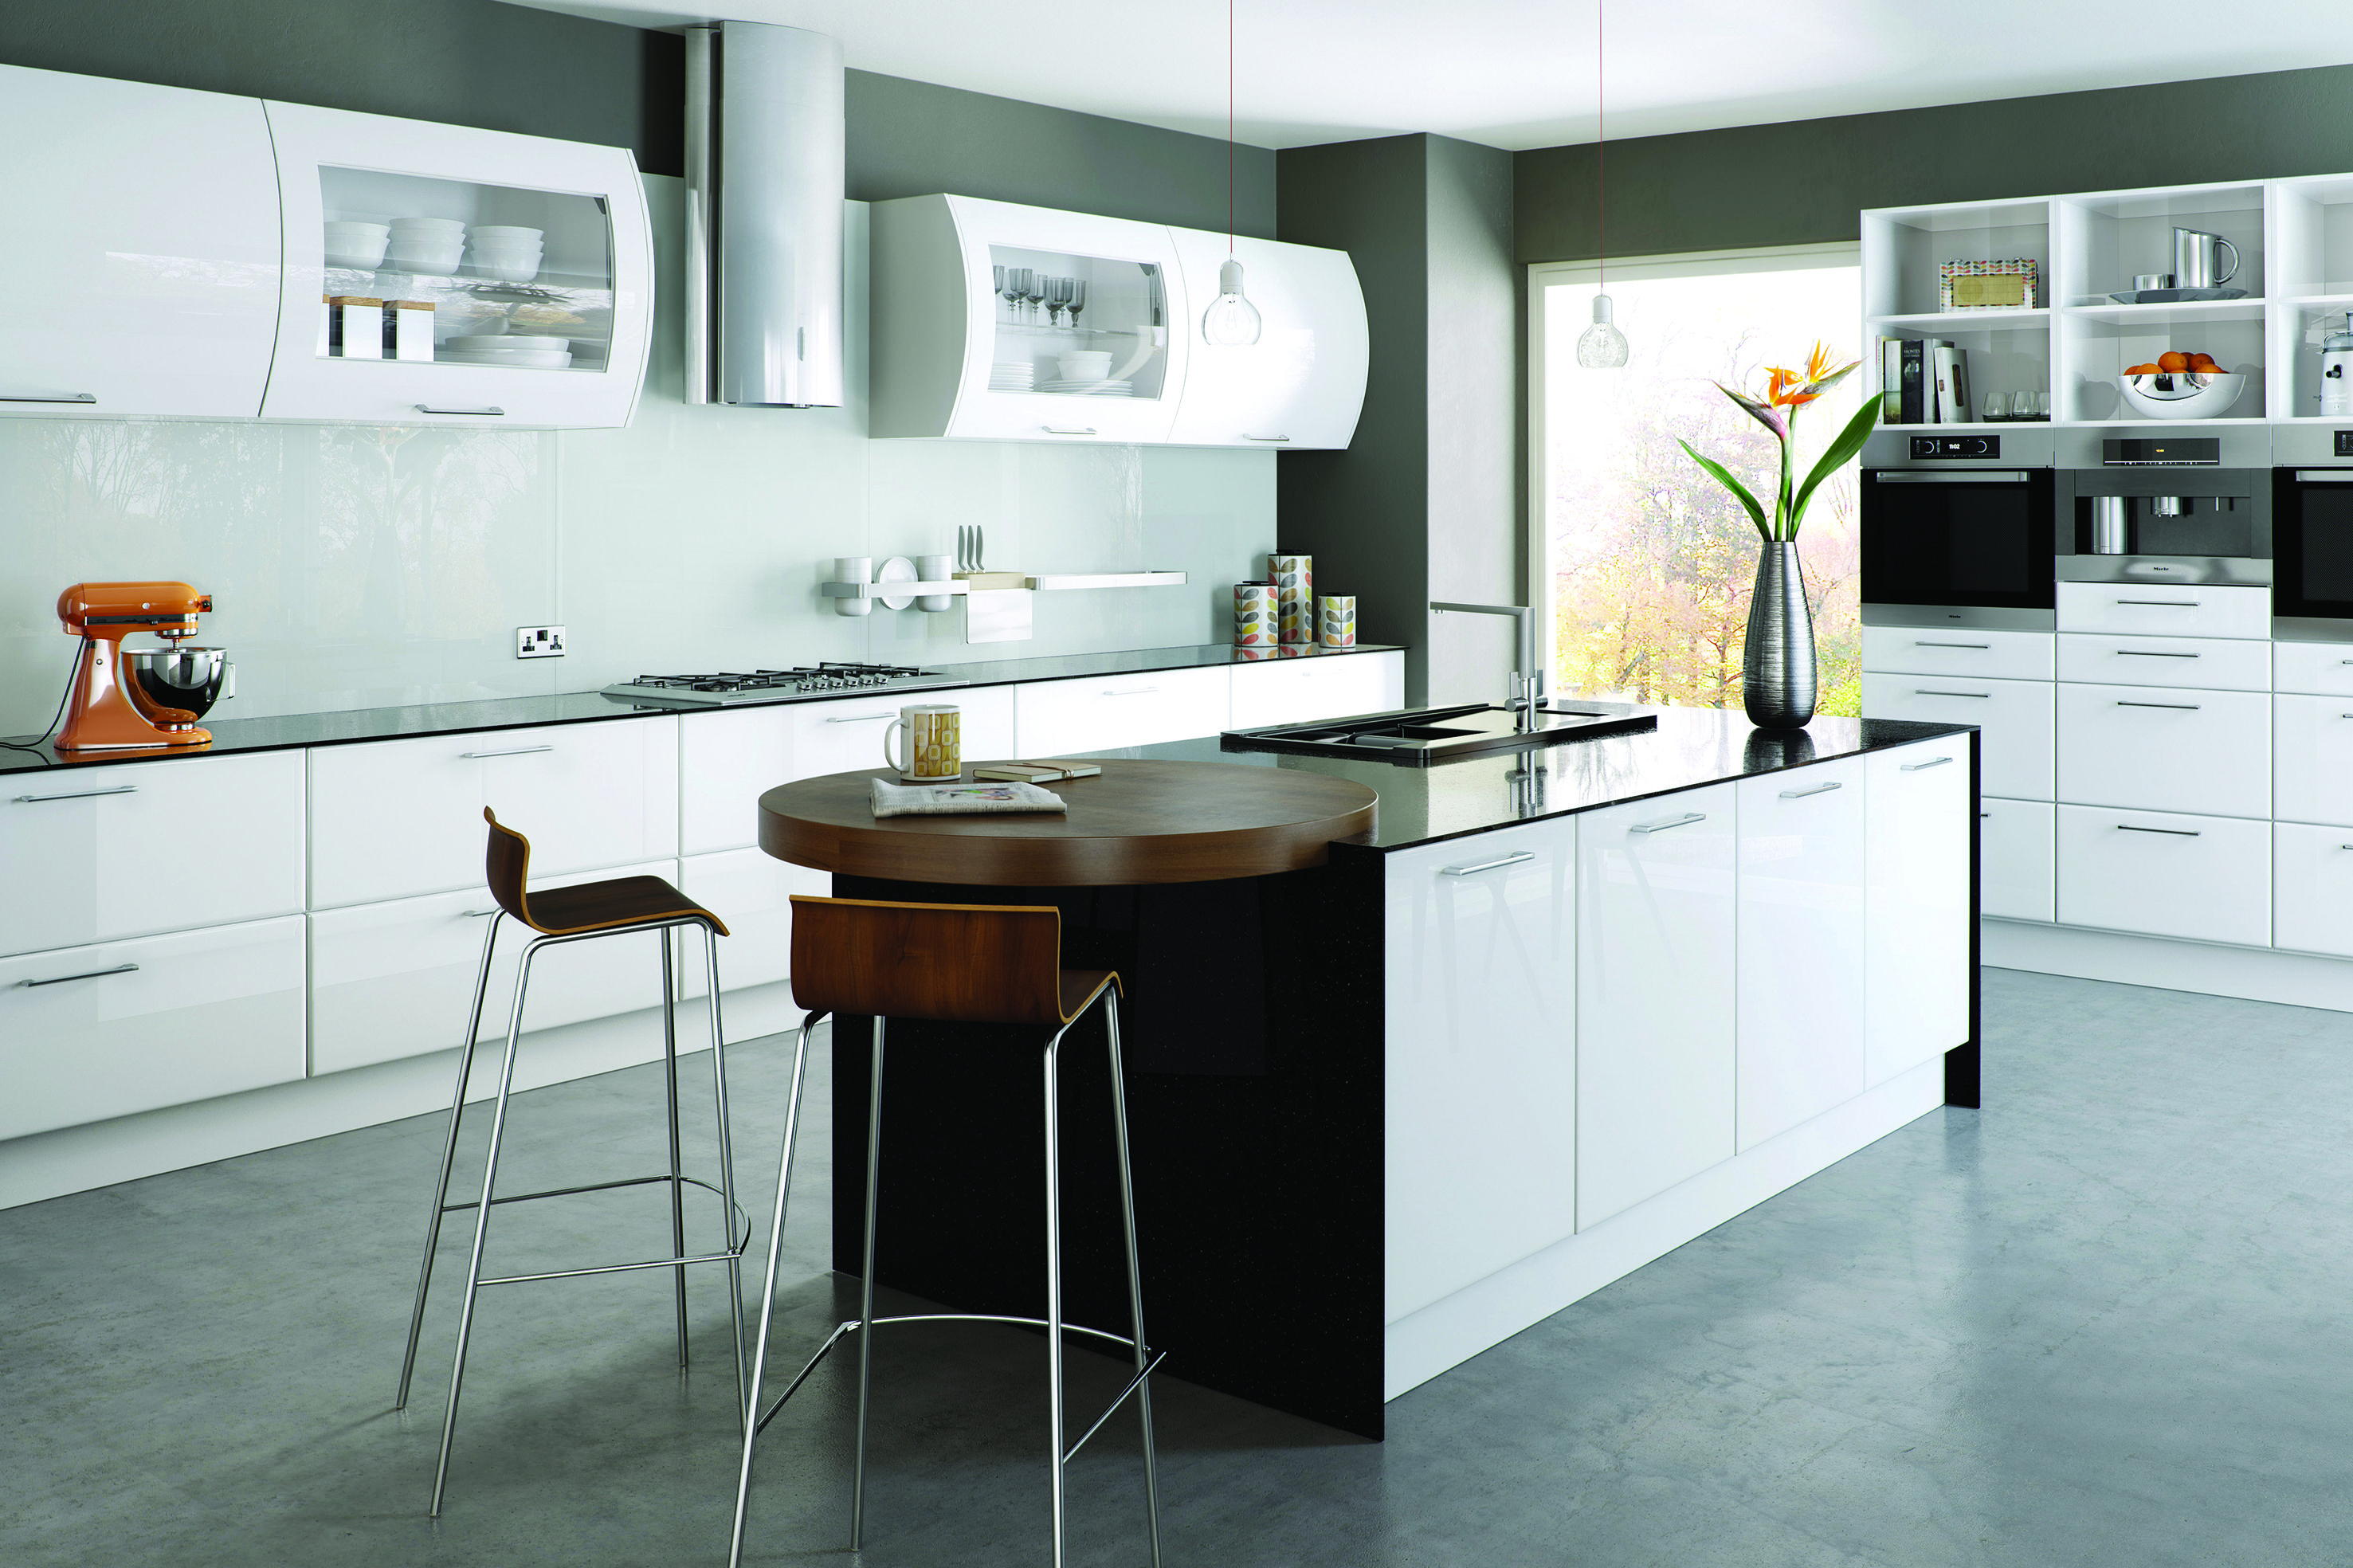 High Gloss White Kitchen. Modern Clean Space With Central Island ...